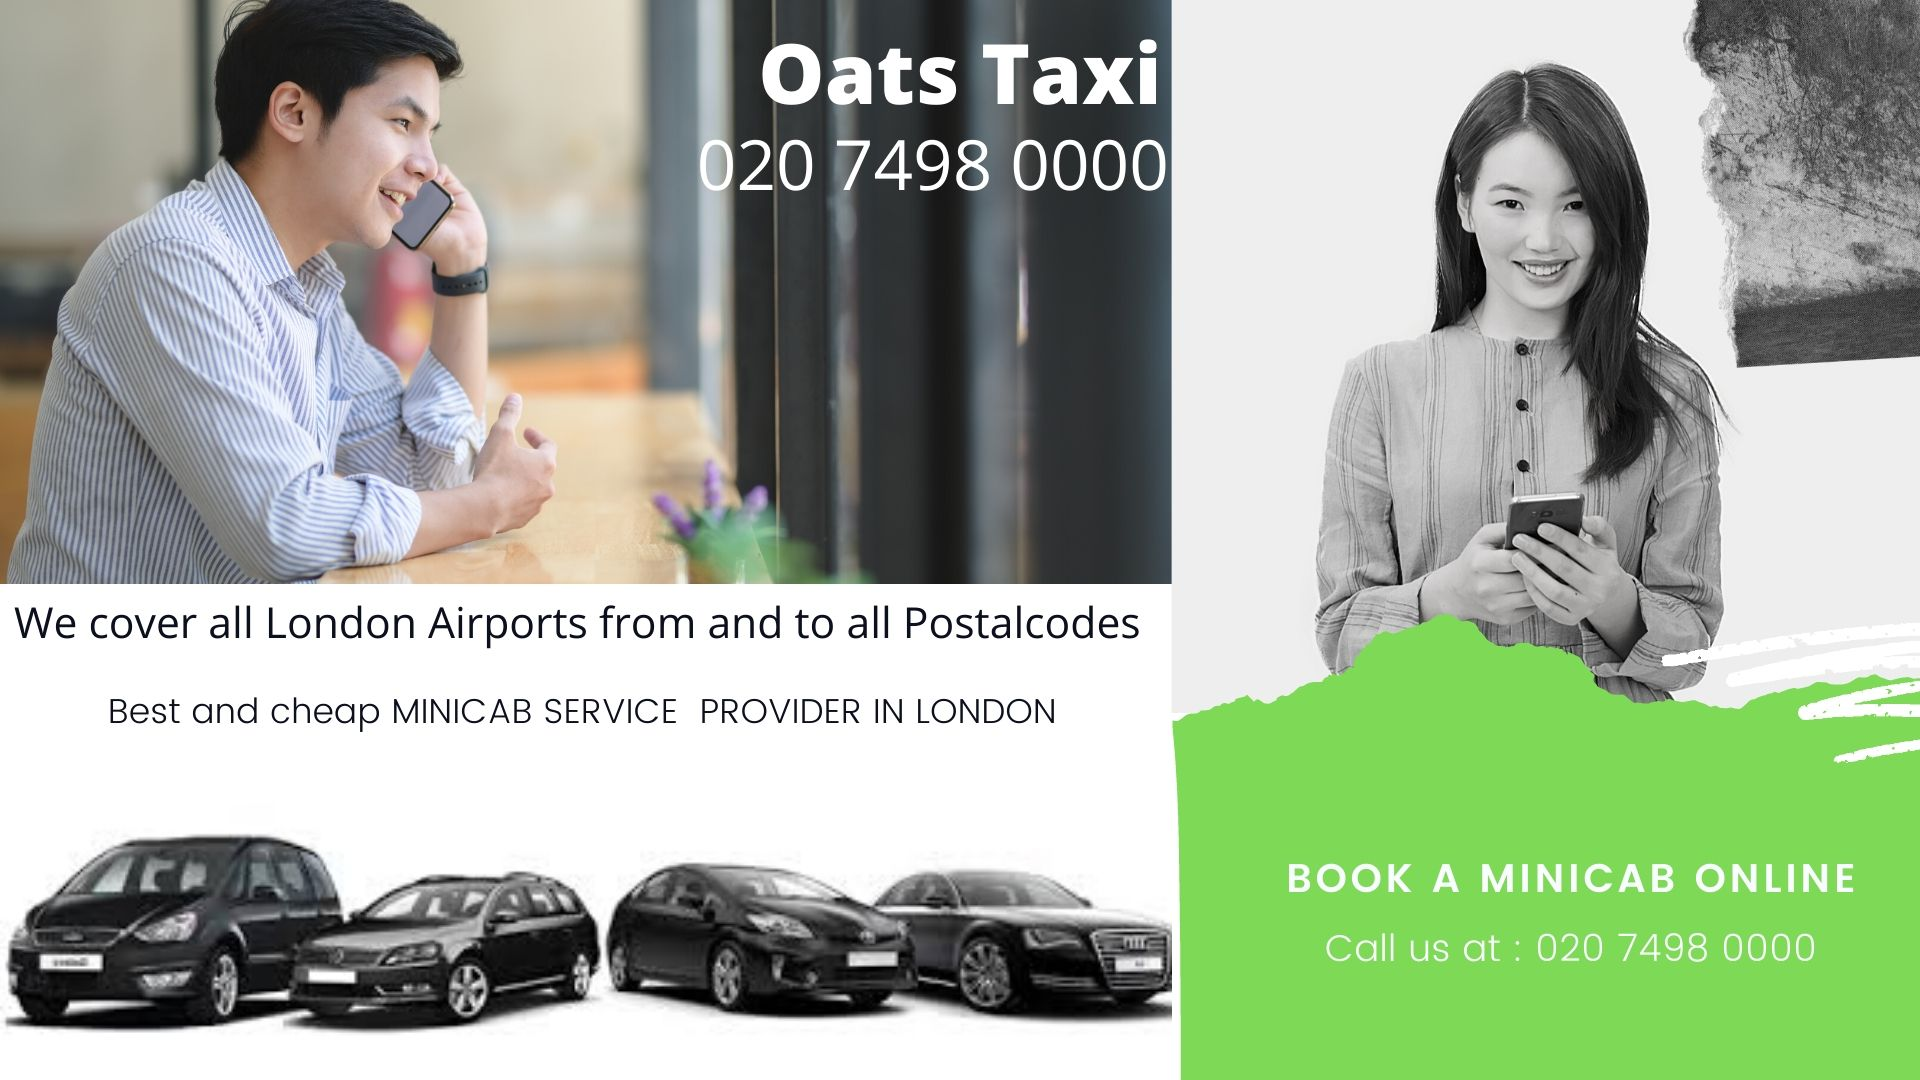 Minicab Office Near BROOMWOOD ROAD, Battersea SW11, Minicab From Battersea SW11 To Gatwick Airport